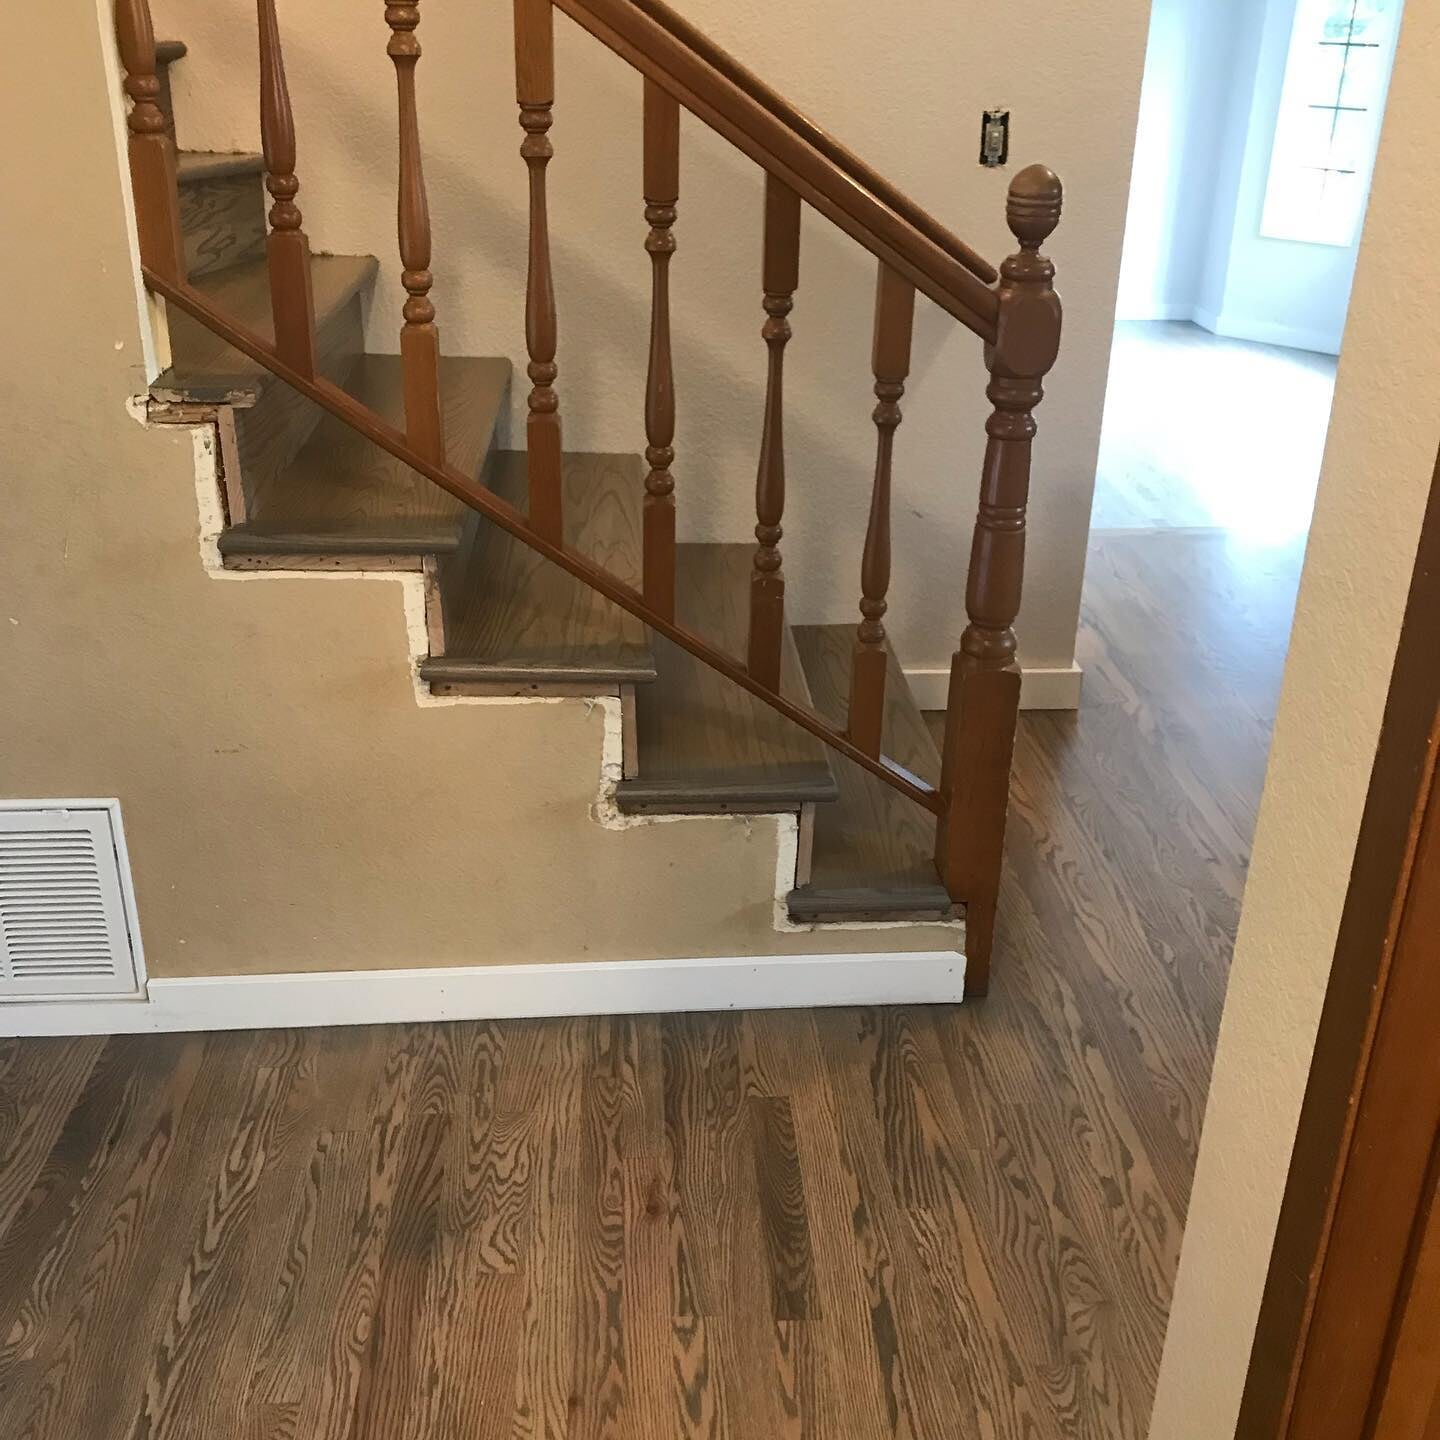 Hardwood floors from LeBlanc Floors & Interiors in Shoreline, WA